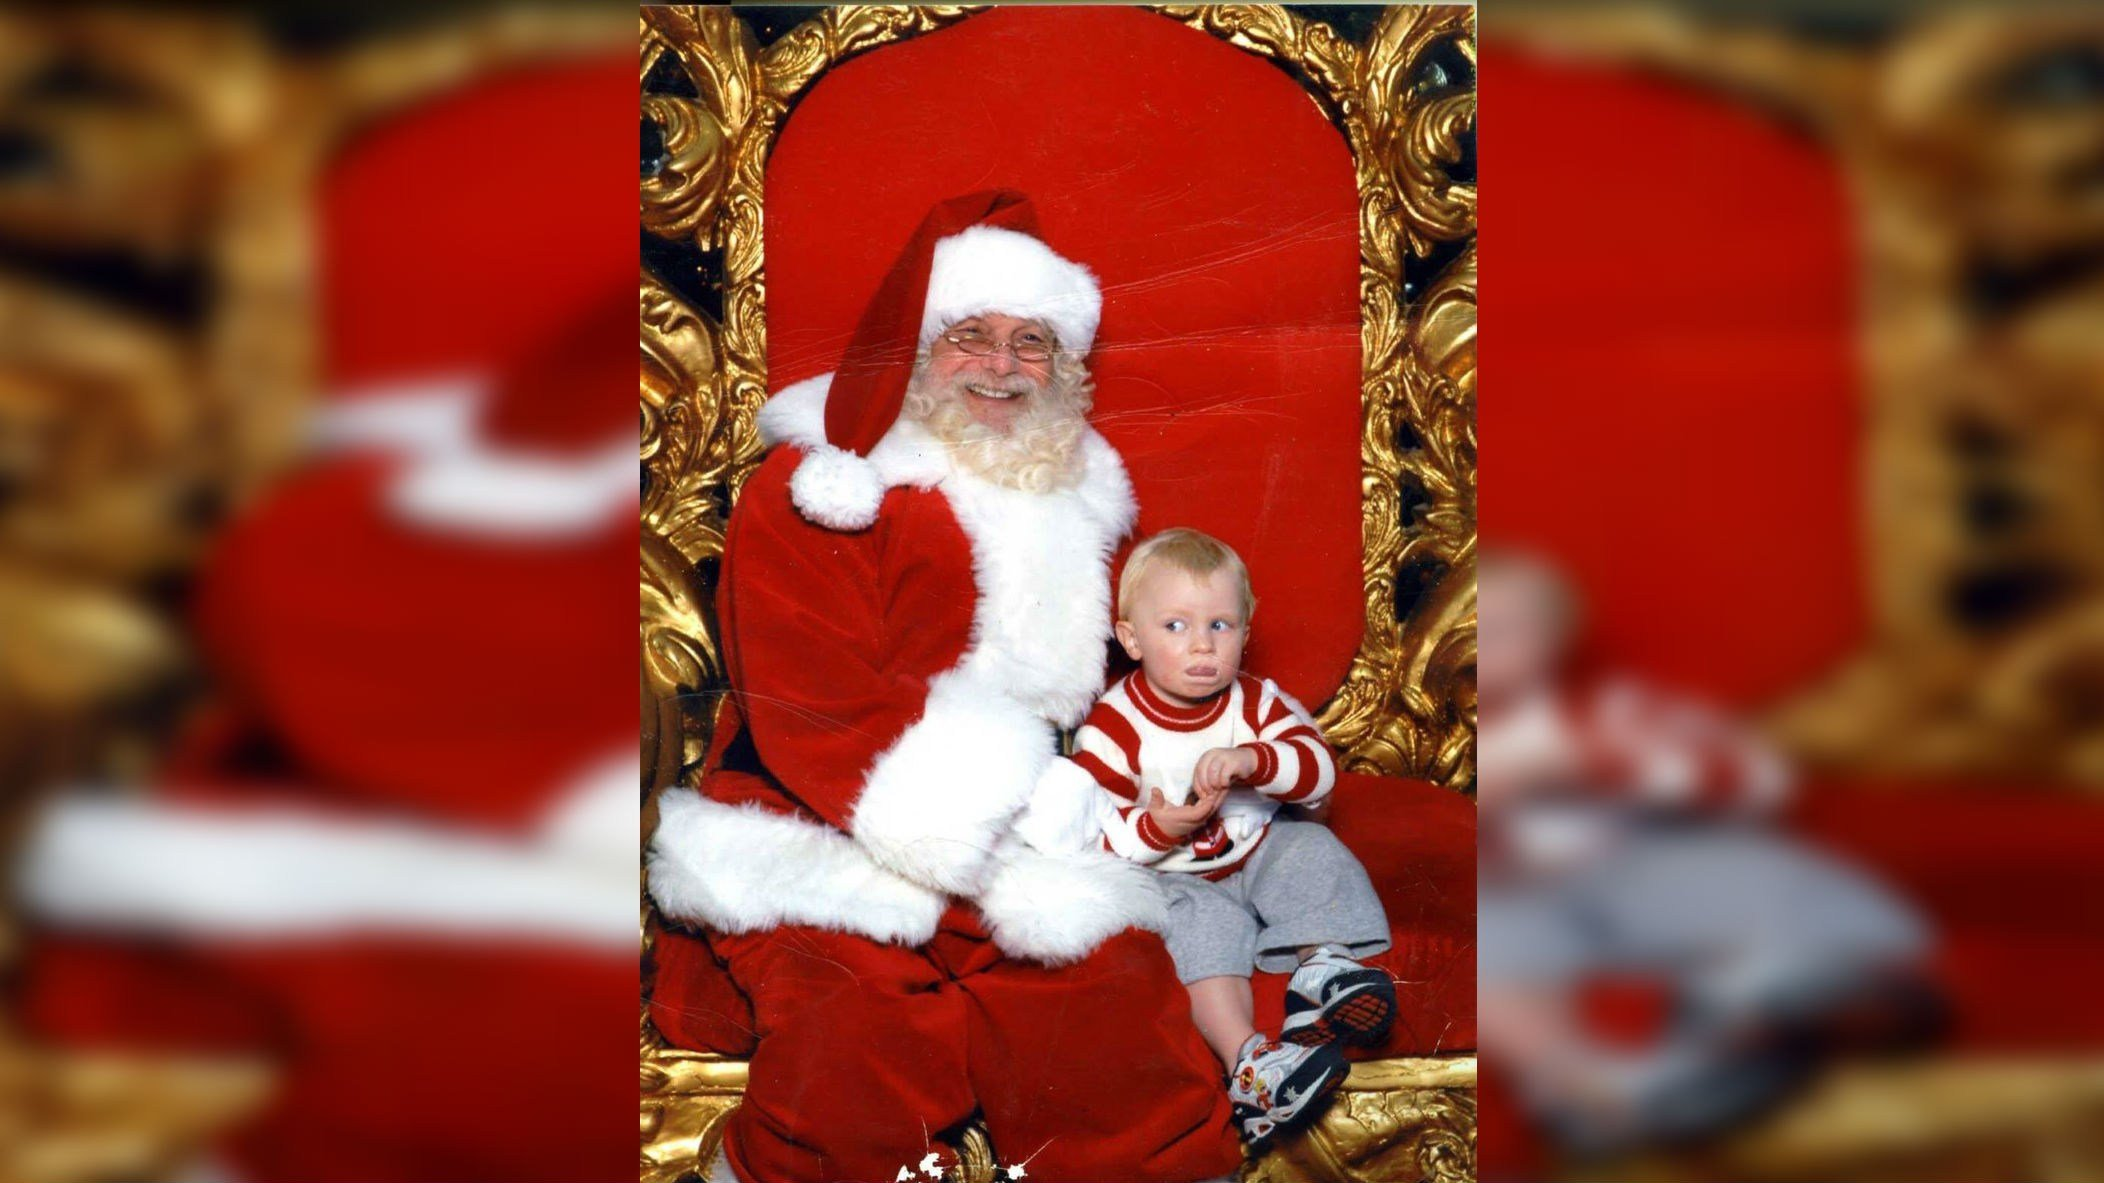 Toddler signs 'help' while sitting on Santa's lap